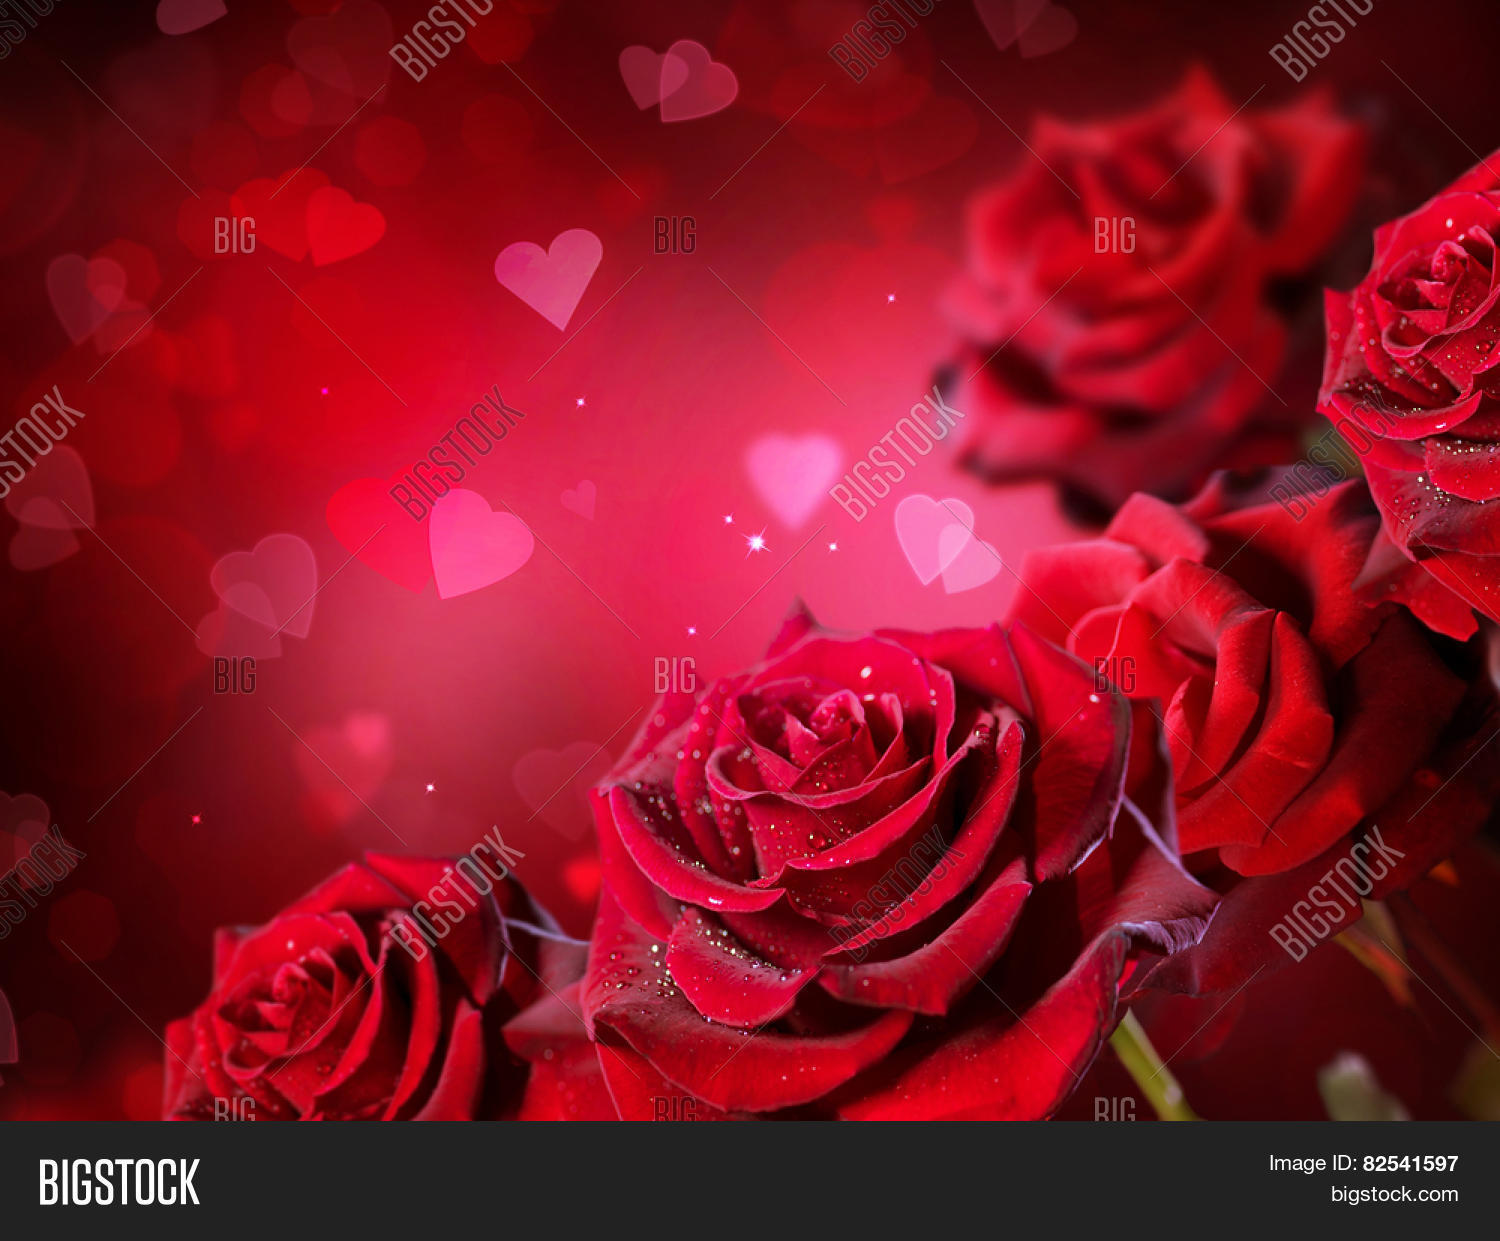 Roses Hearts Image & Photo (Free Trial) | Bigstock